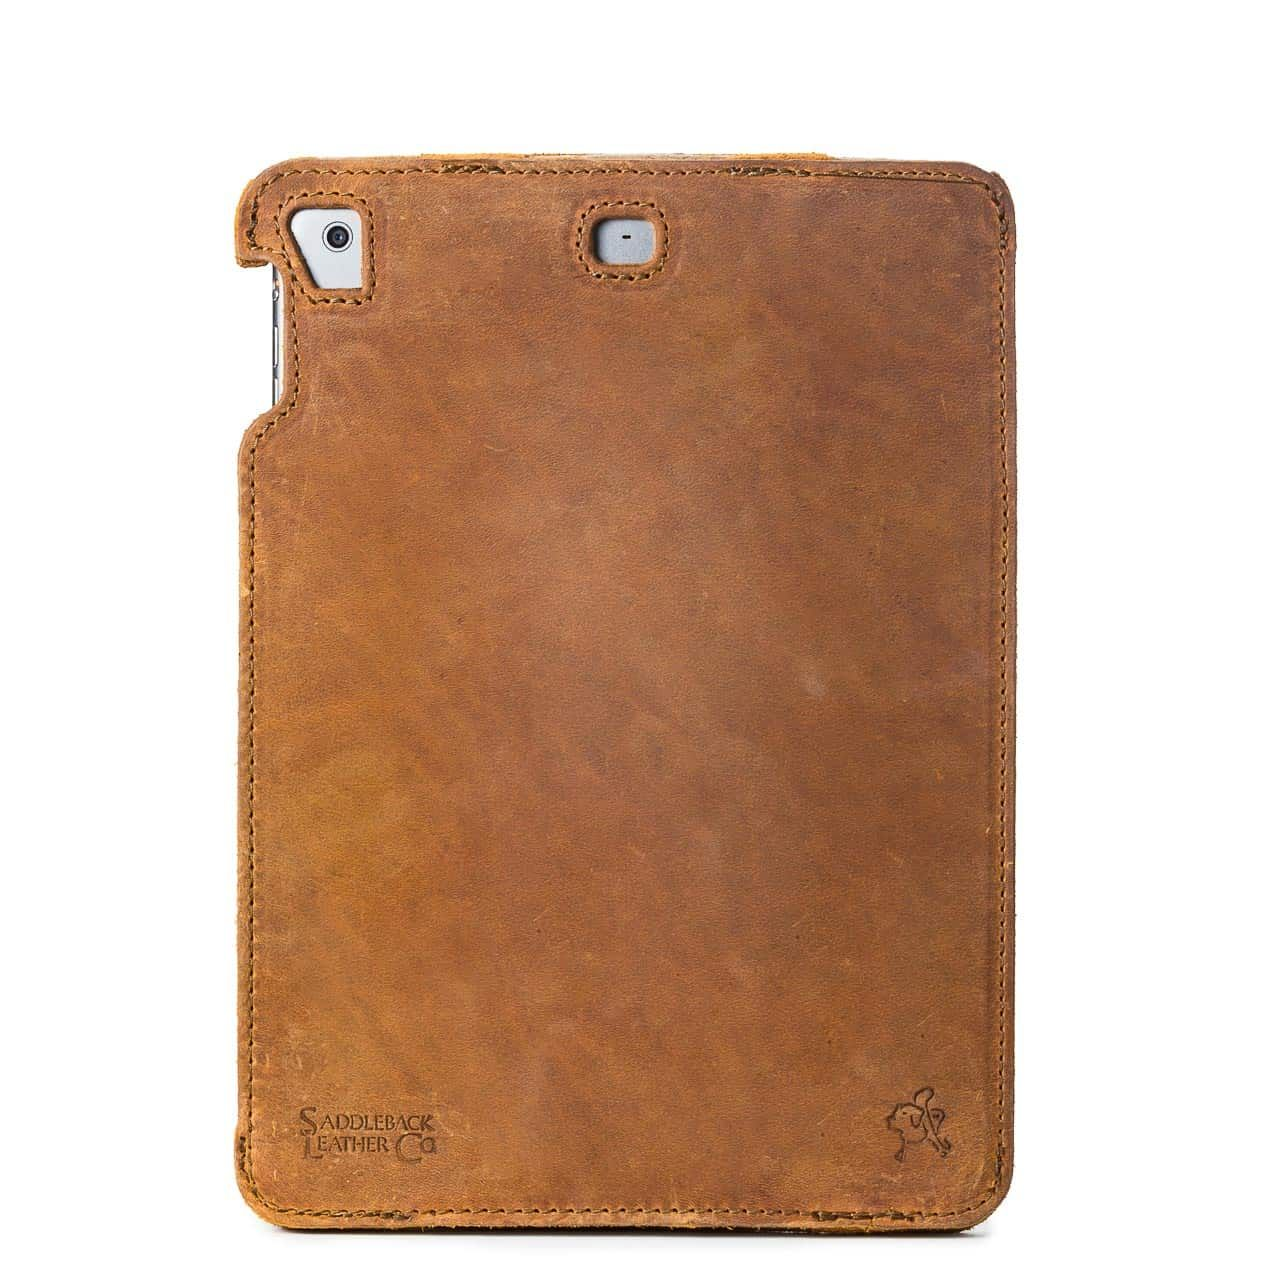 Simple iPad Case in color Tobacco from the back